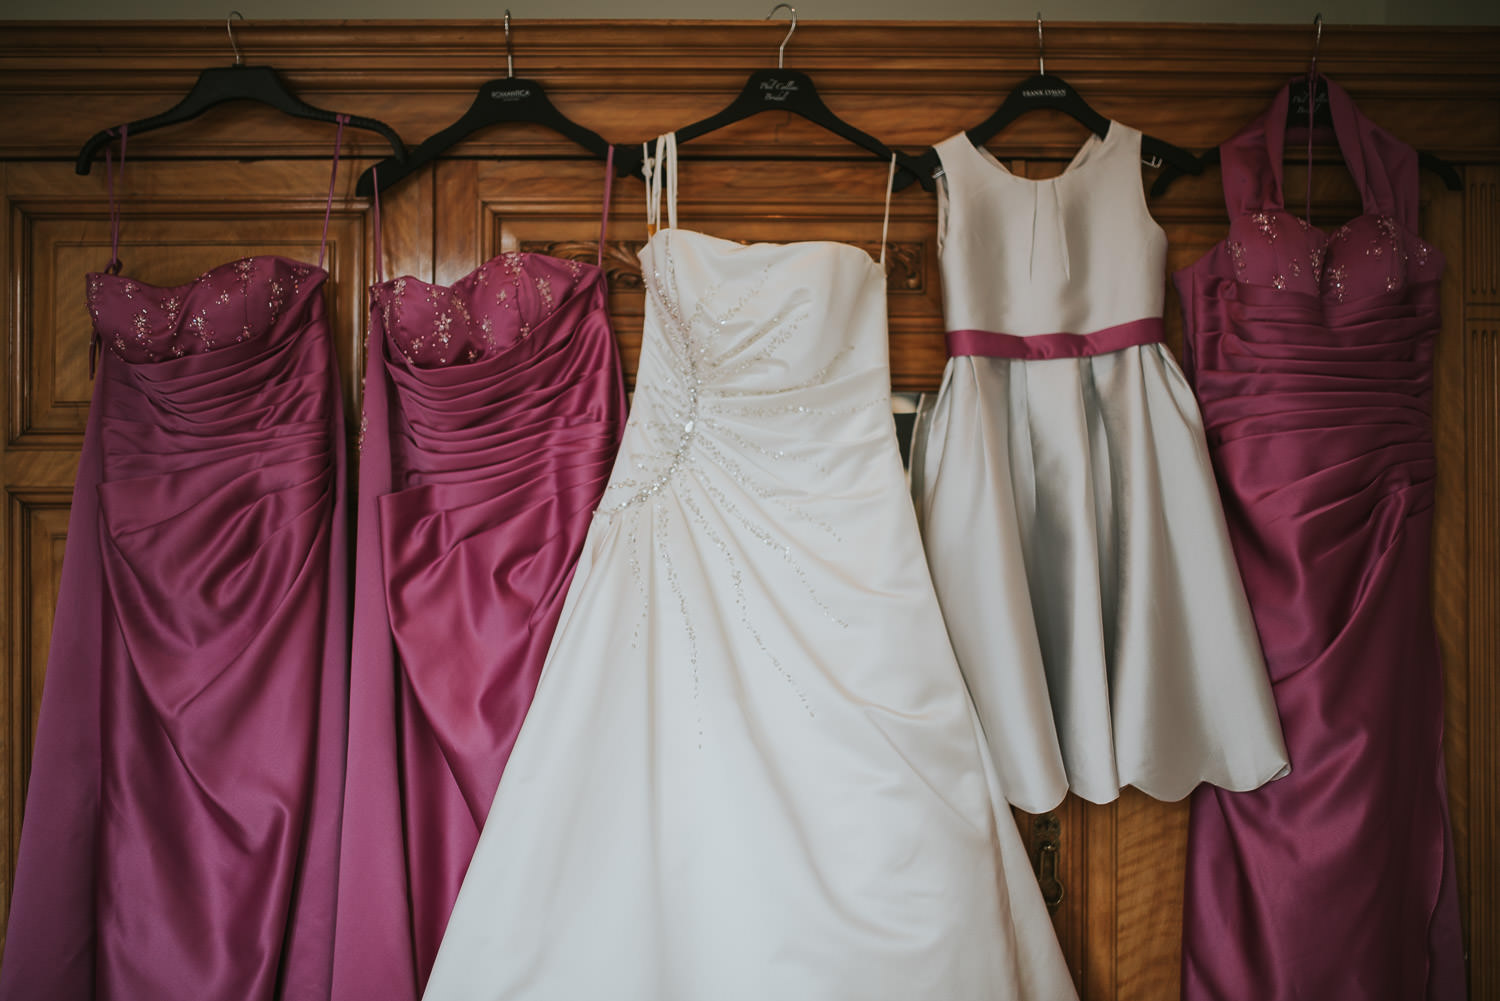 country wedding bridesdress and bridesmaids' dresses